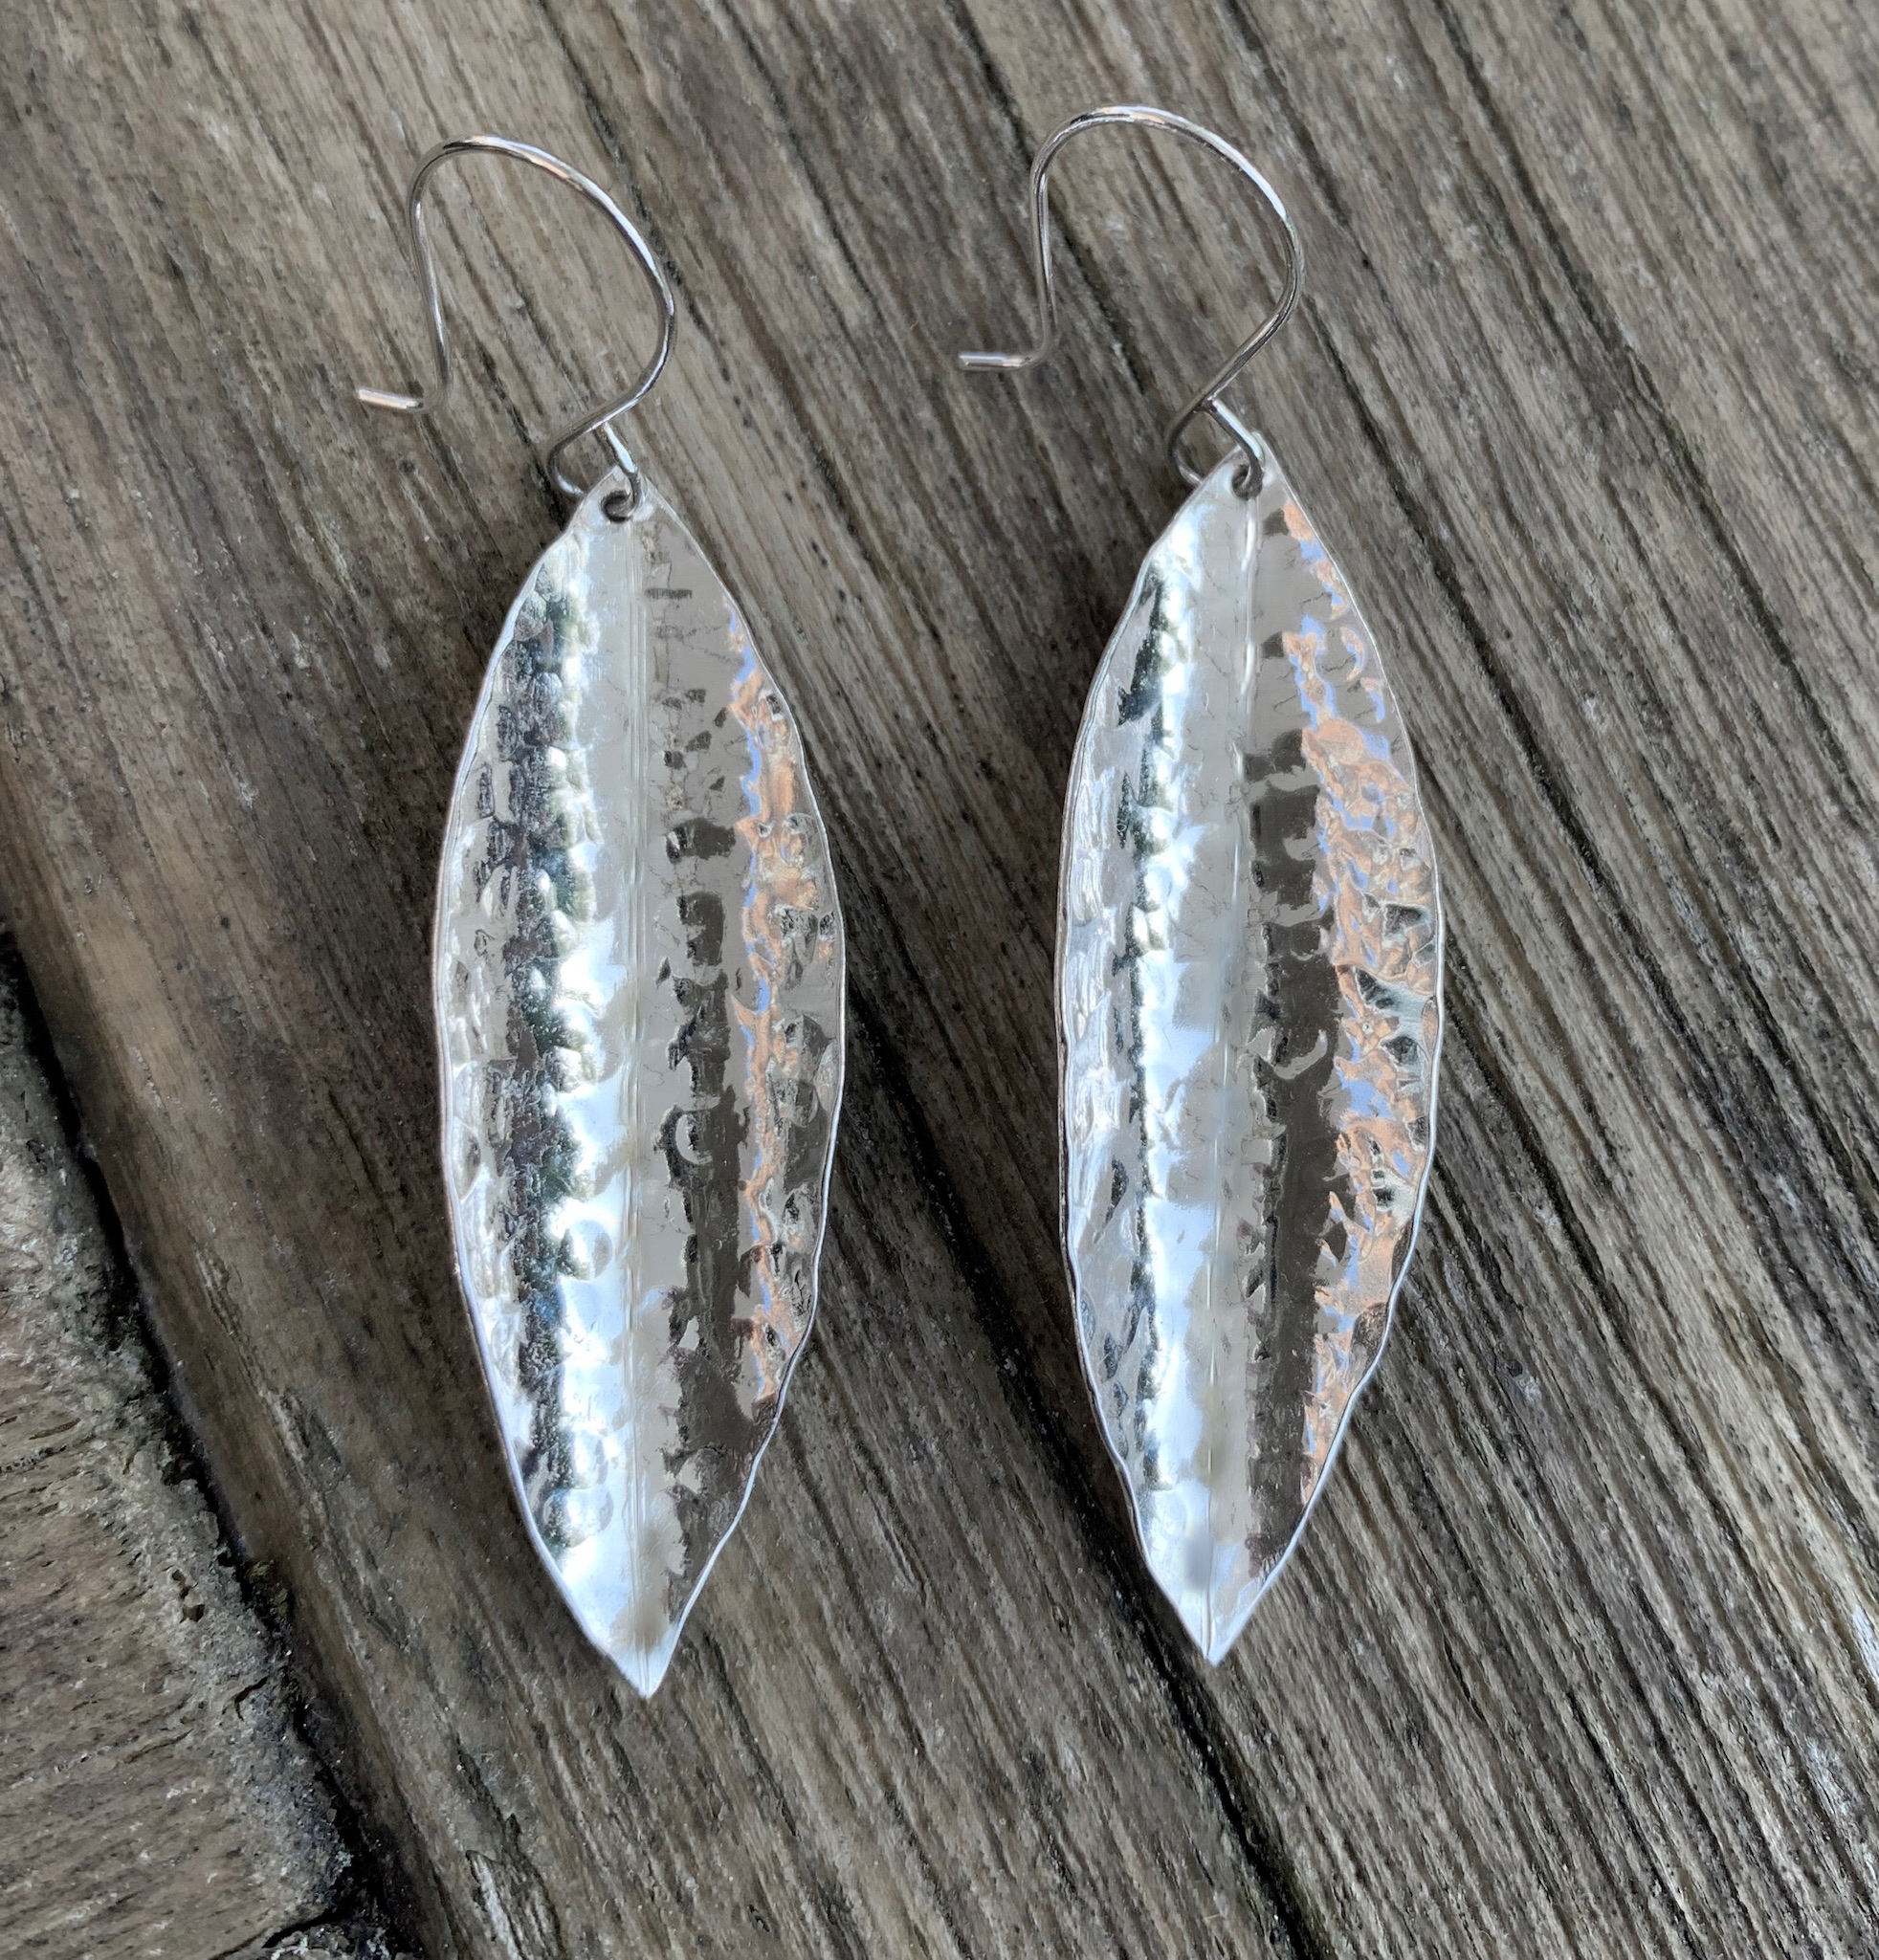 1 Leaf Earrings